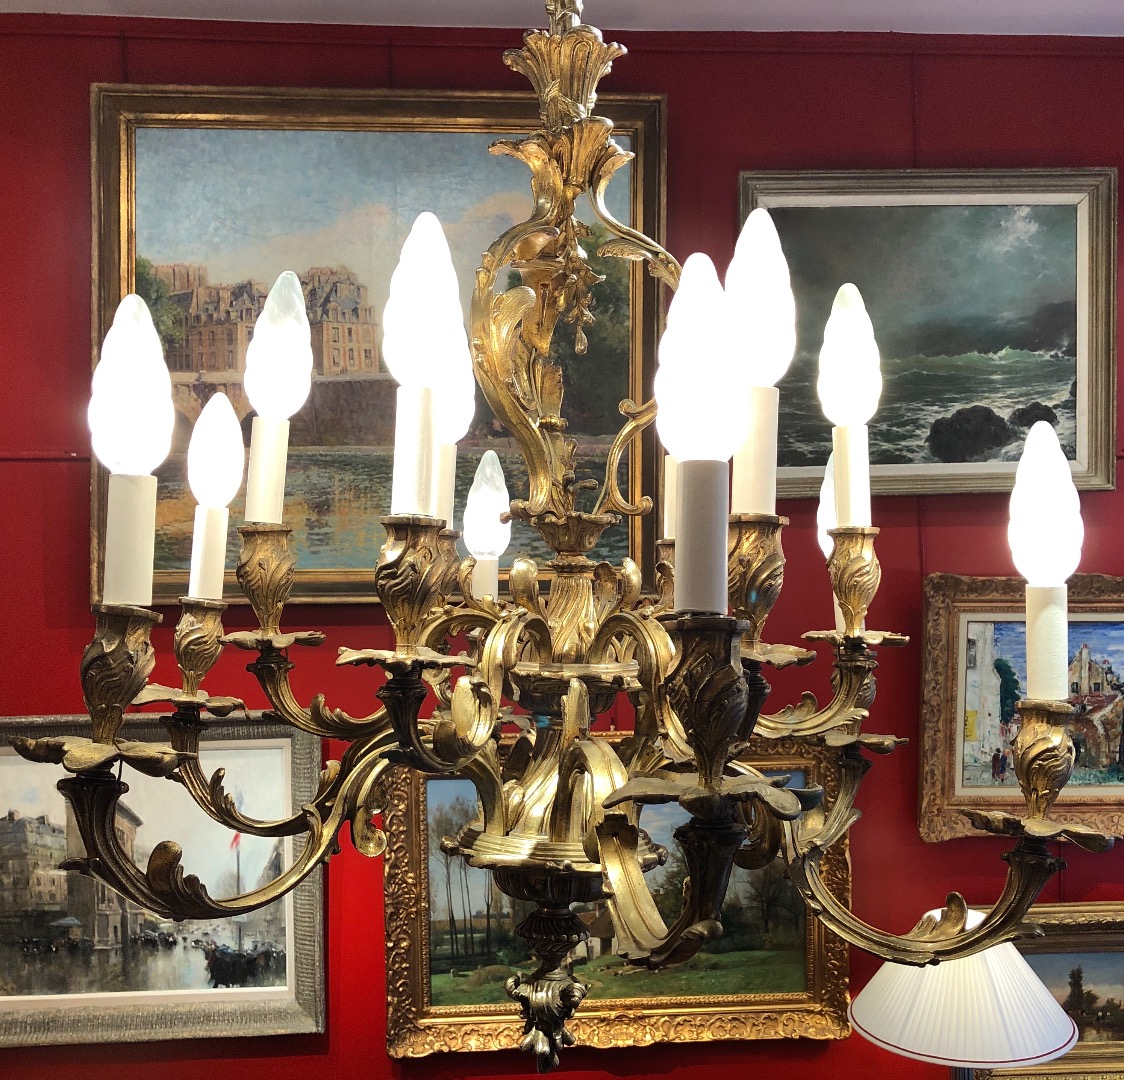 Chandelier rocaille giltbronze style LOUIS XV Napoleon III period 19Th century 12 lights